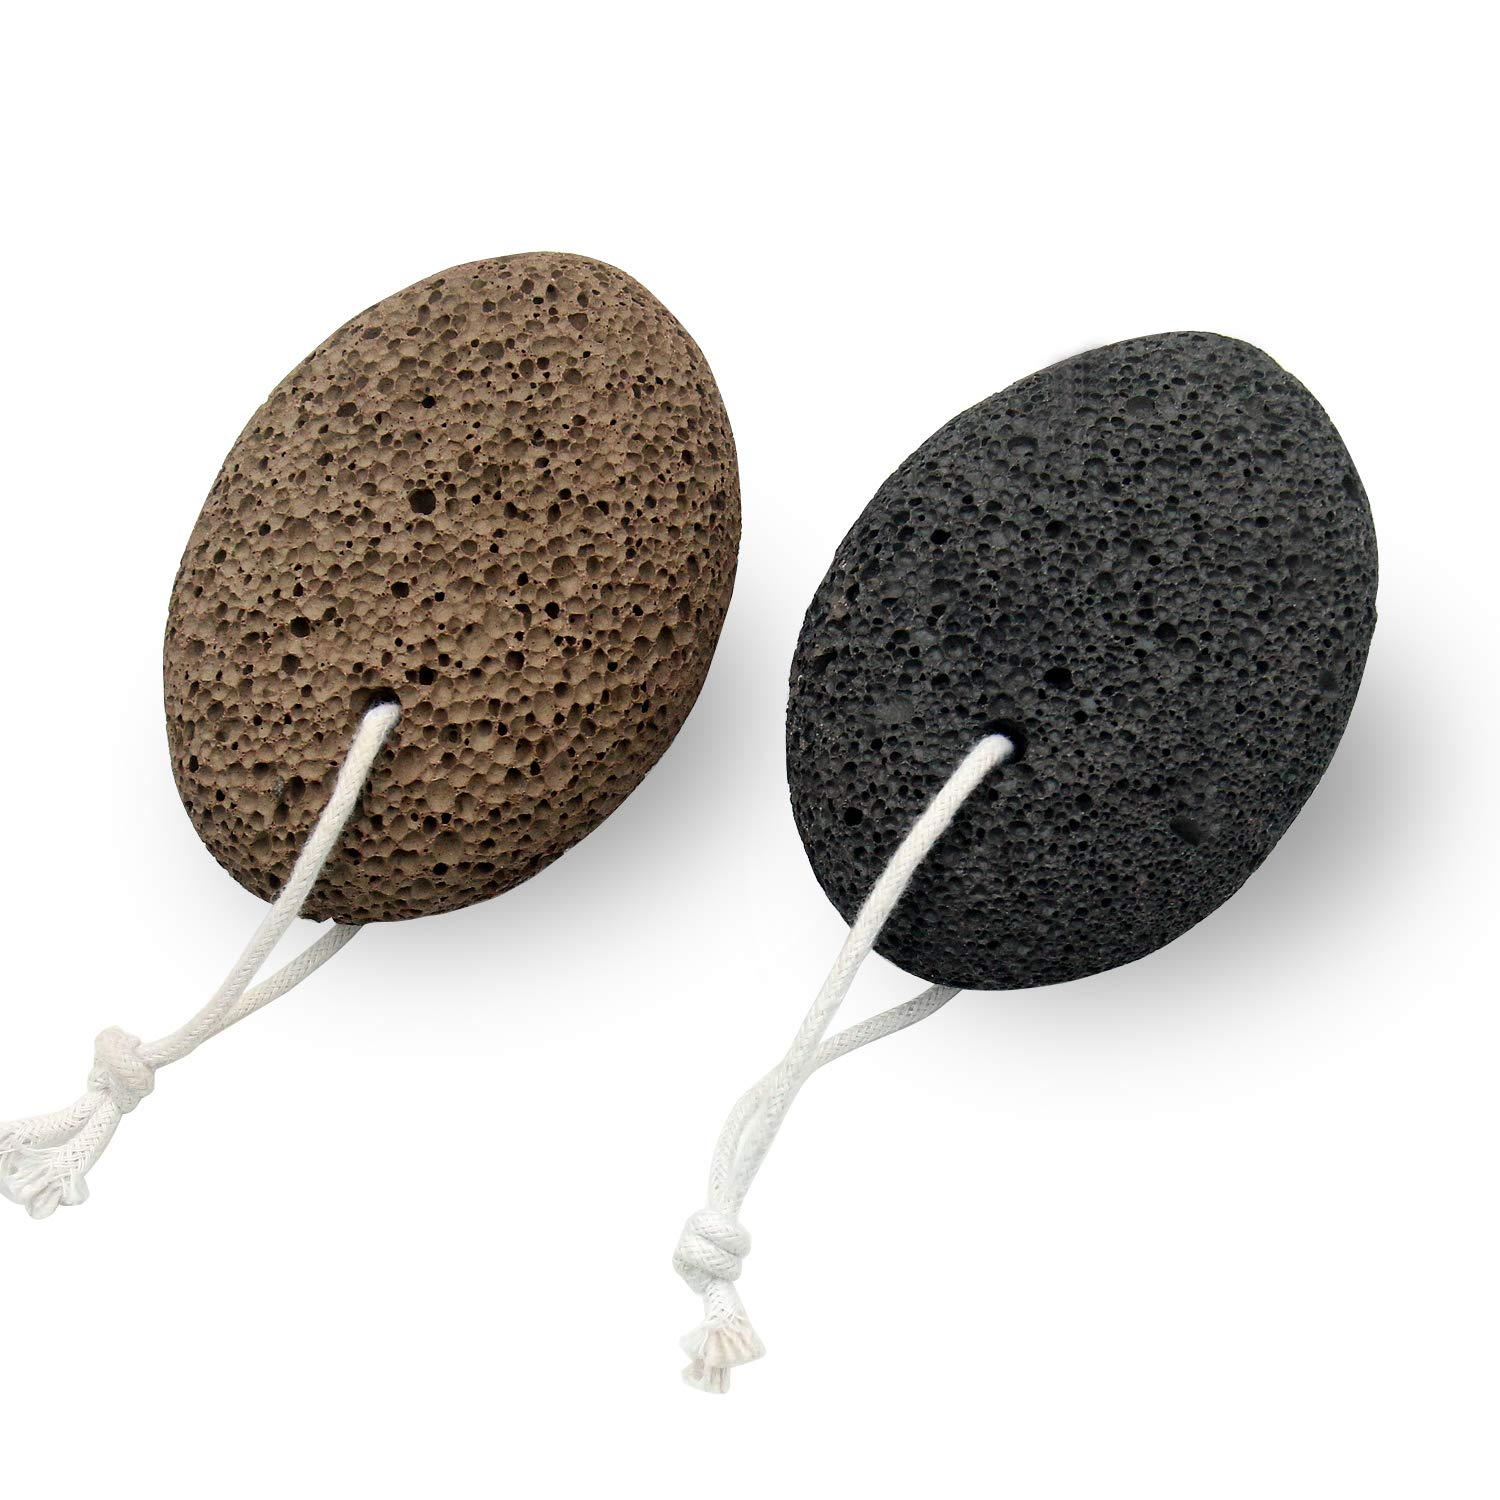 Glamne Natural Pumice StoneEarth Lava PedicureTools Callus Dead Skin Remover for Feet and Hands 2pcs